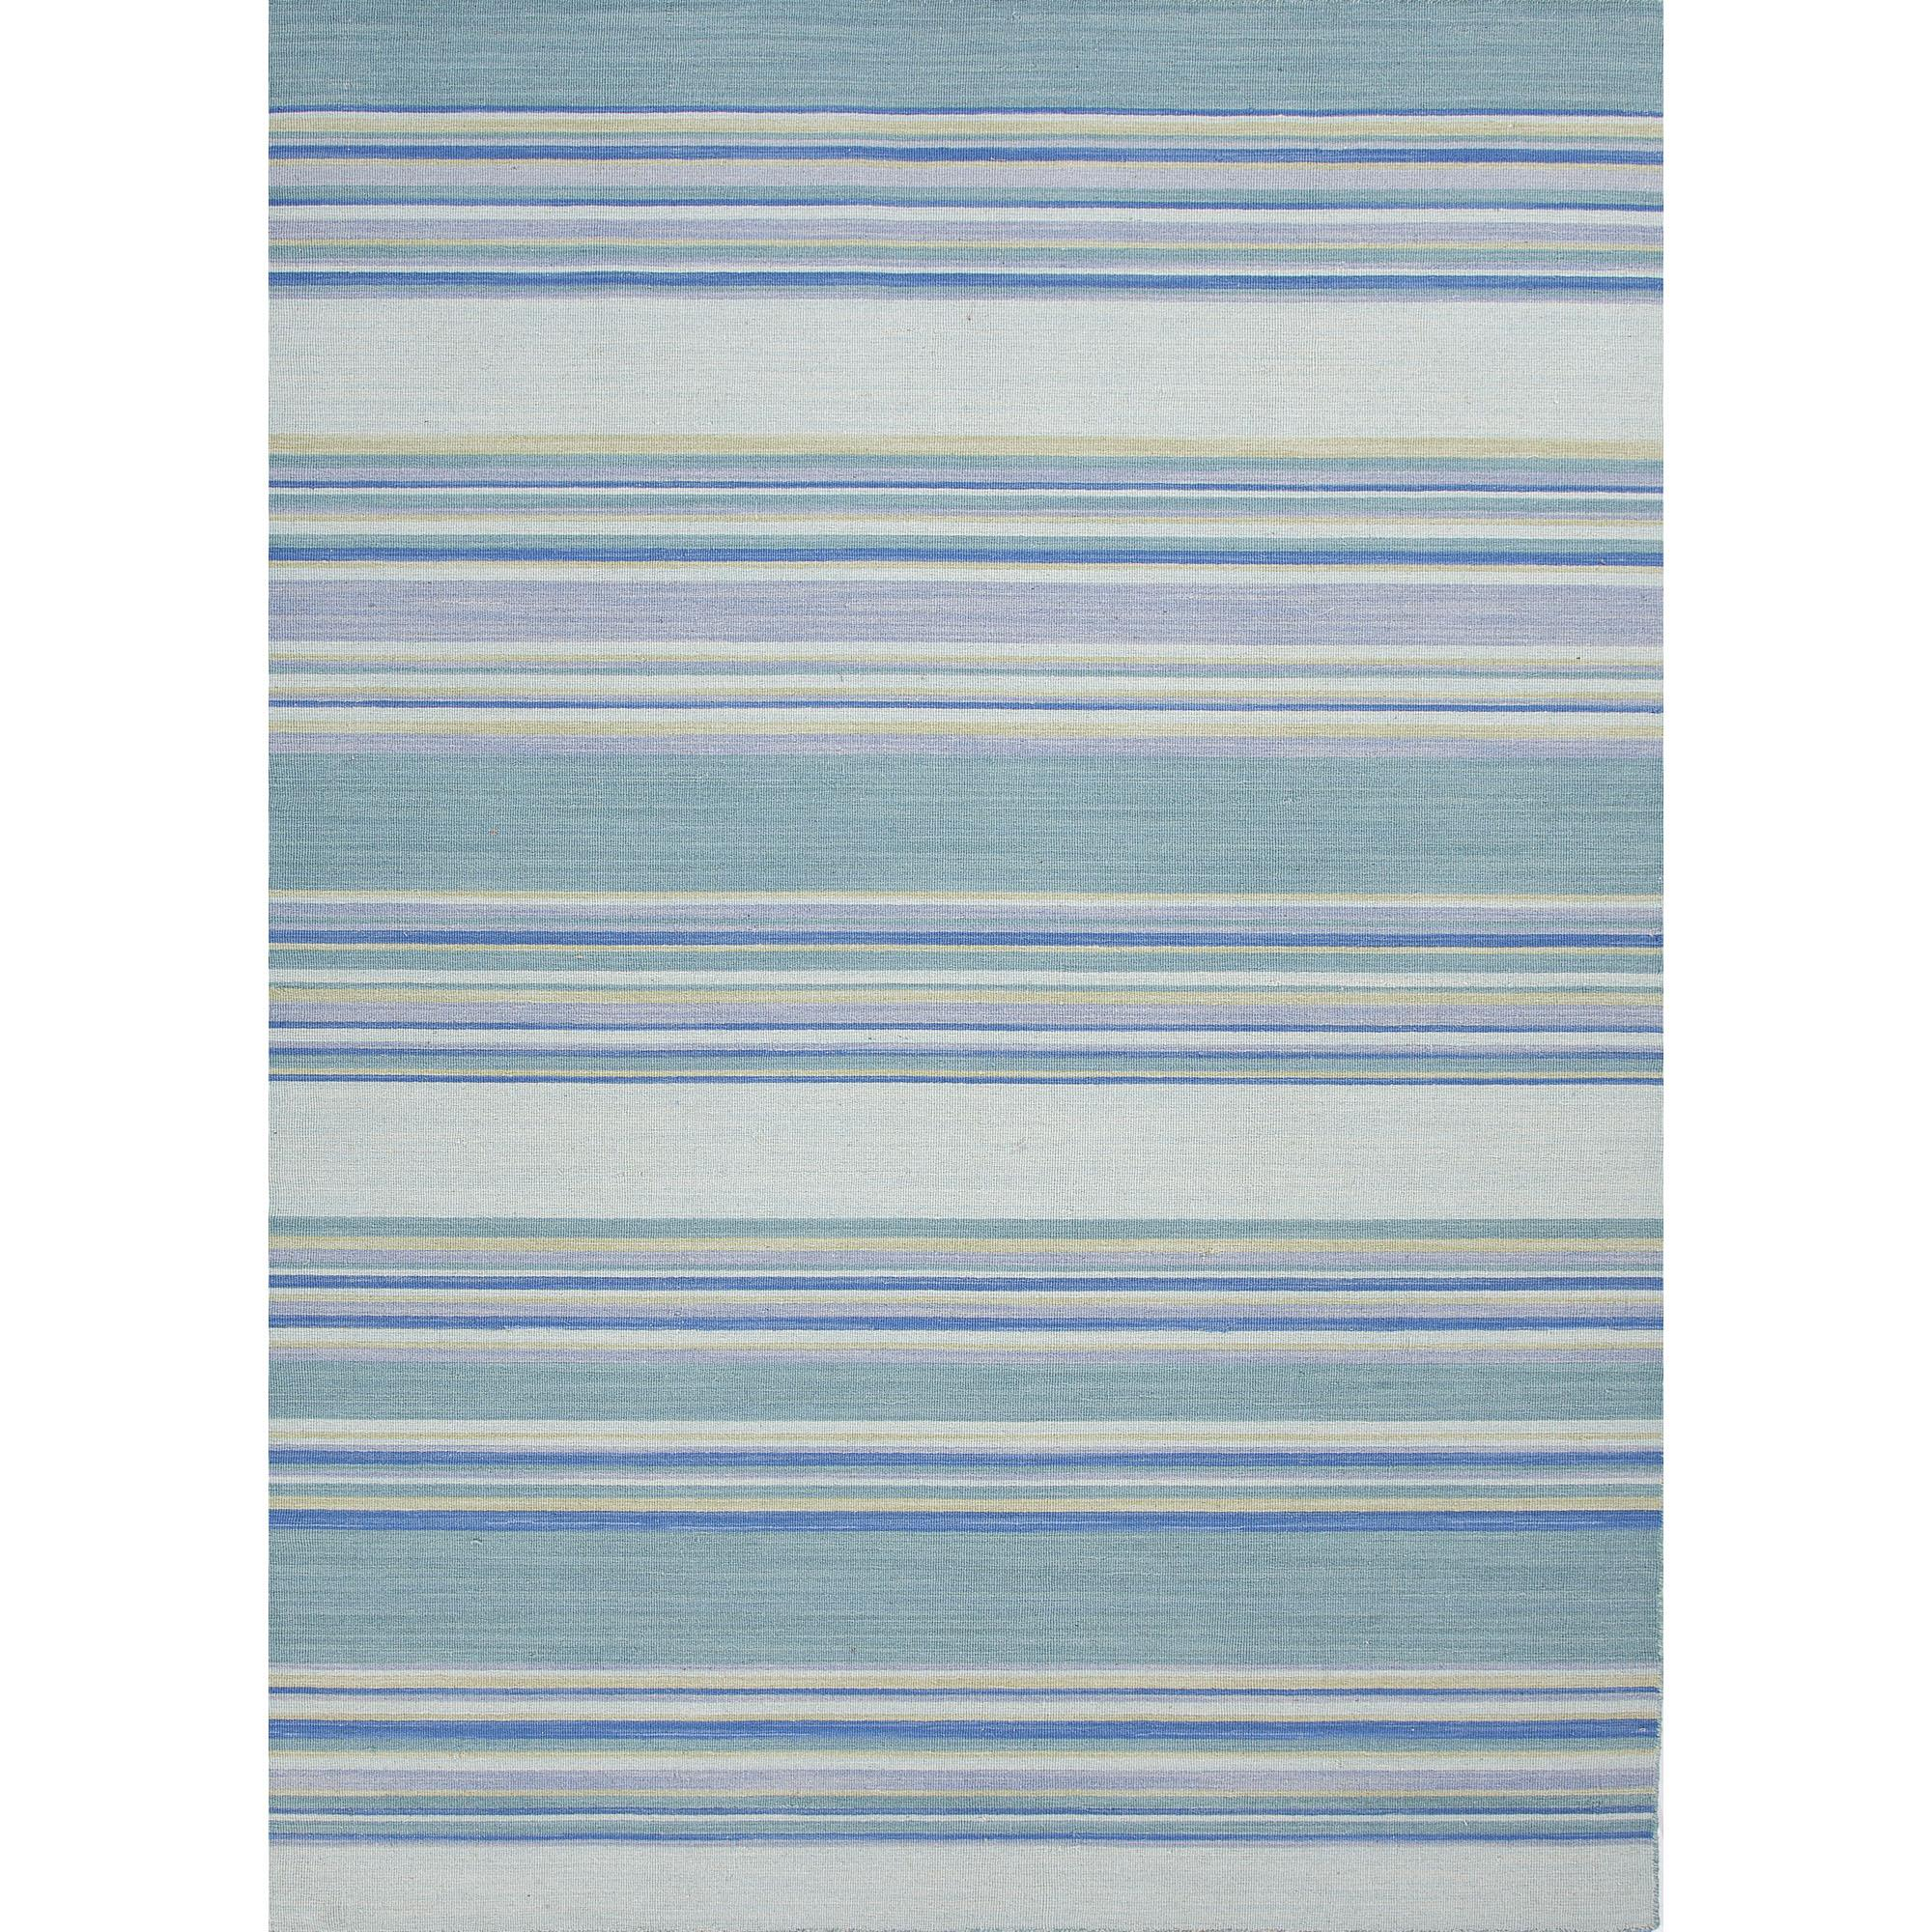 JAIPUR Rugs Coastal Shores 9 x 12 Rug - Item Number: RUG122440